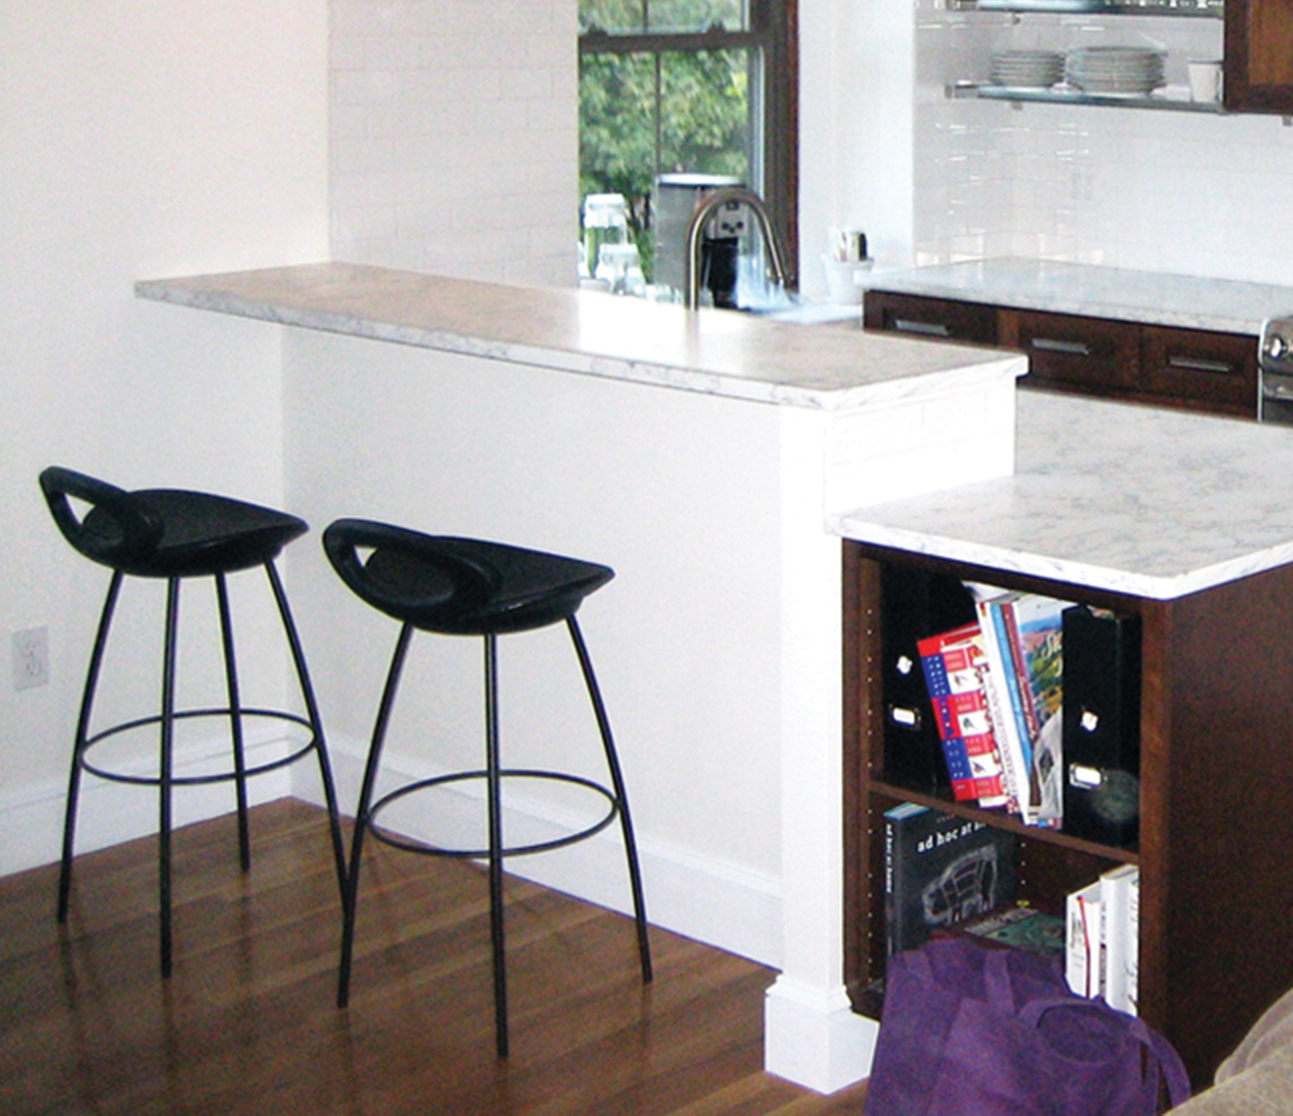 island countertop kitchen overhang discussions images requests legs support